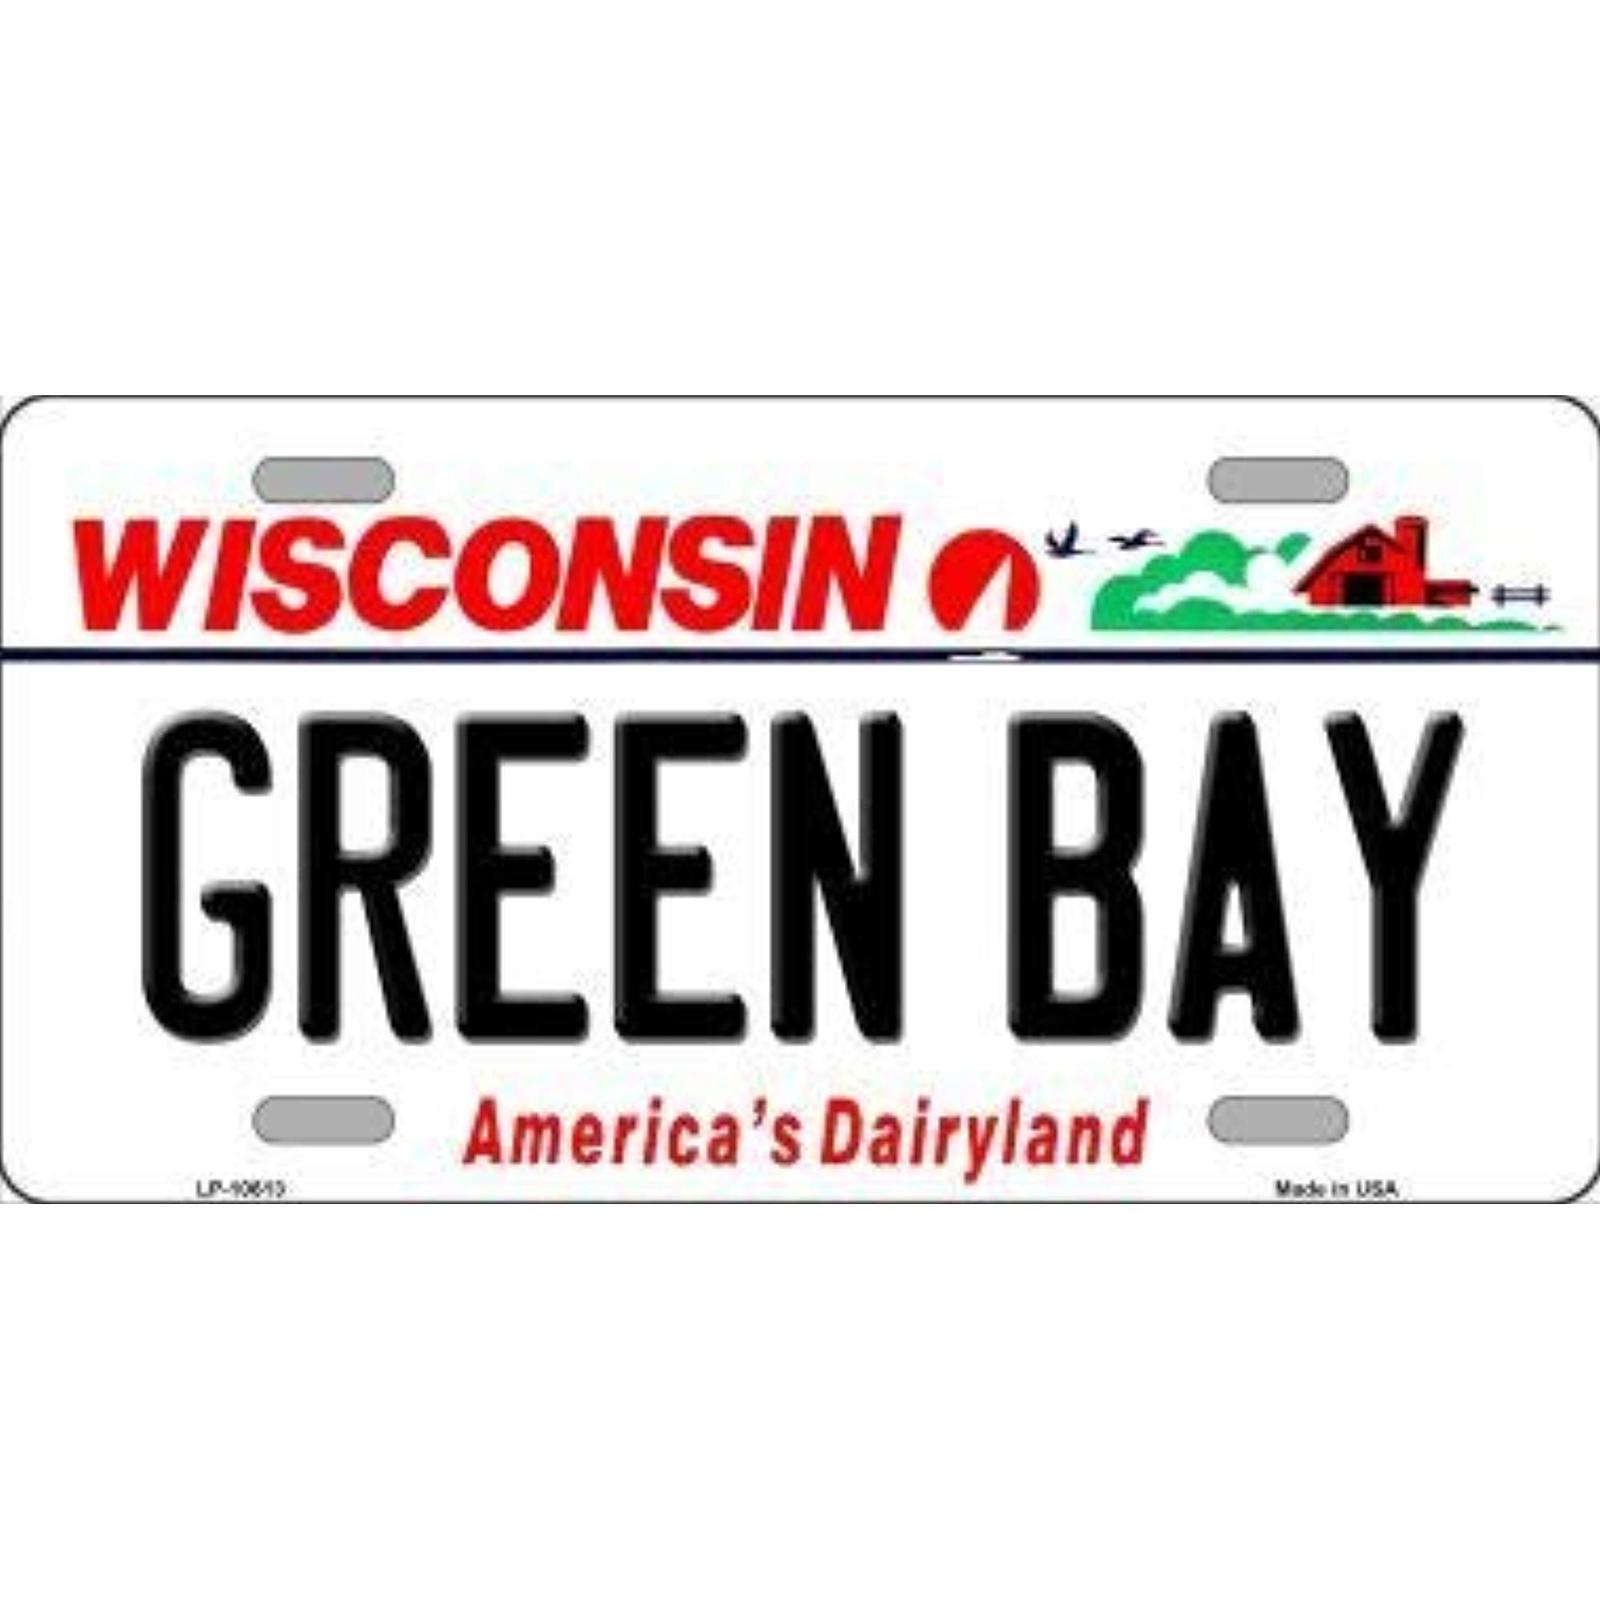 Packers Wisconsin State Background Novelty Metal License Plate Tag (Green Bay)